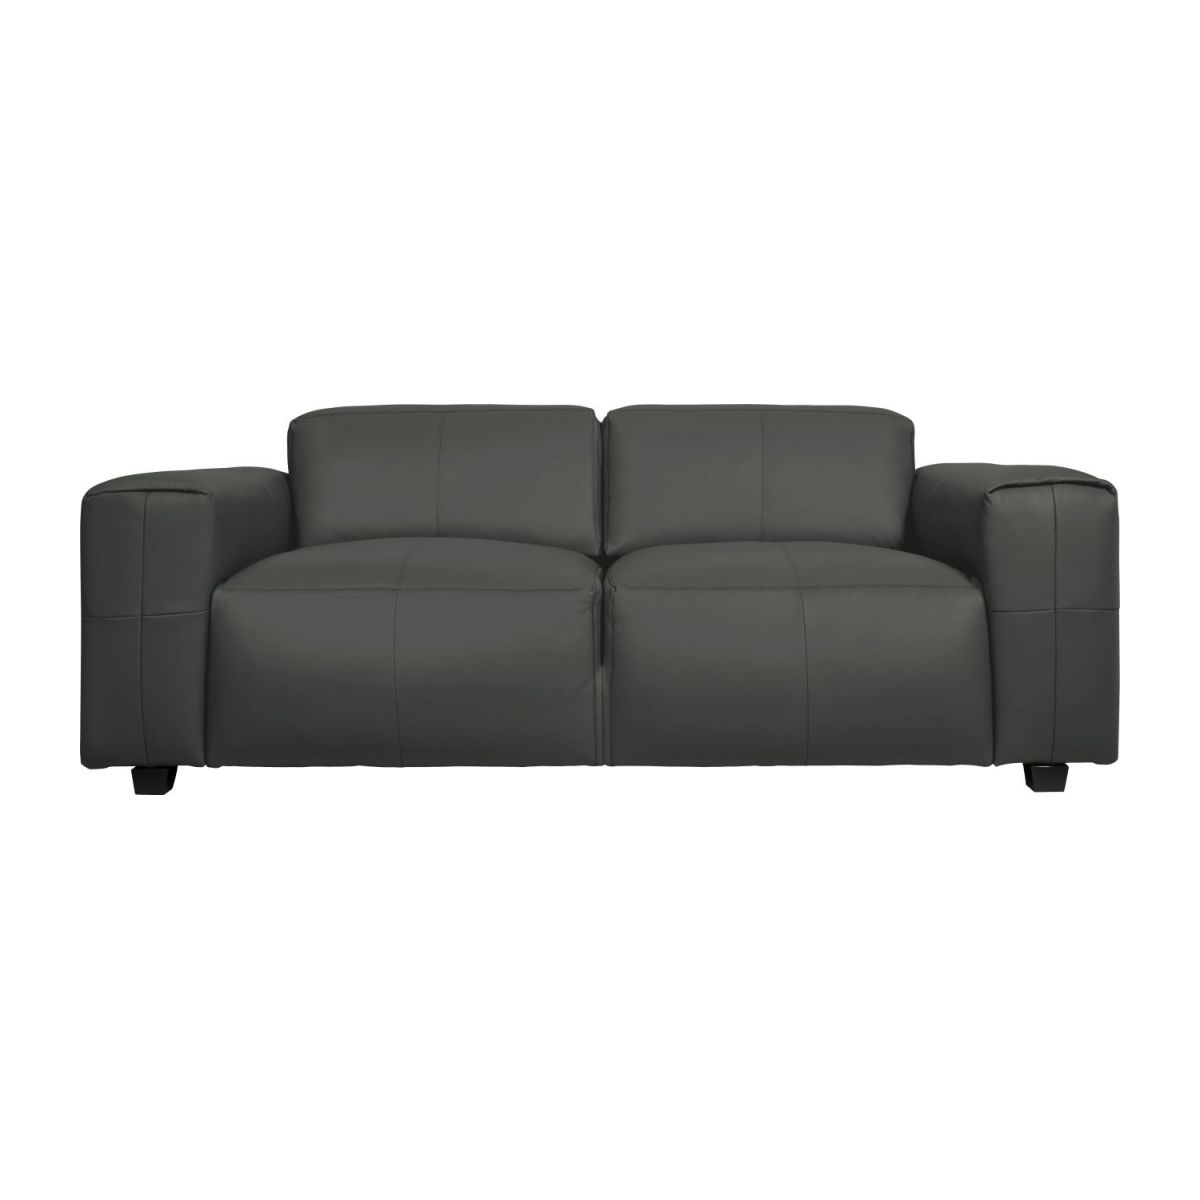 4 seater sofa in Savoy semi-aniline leather, grey n°3